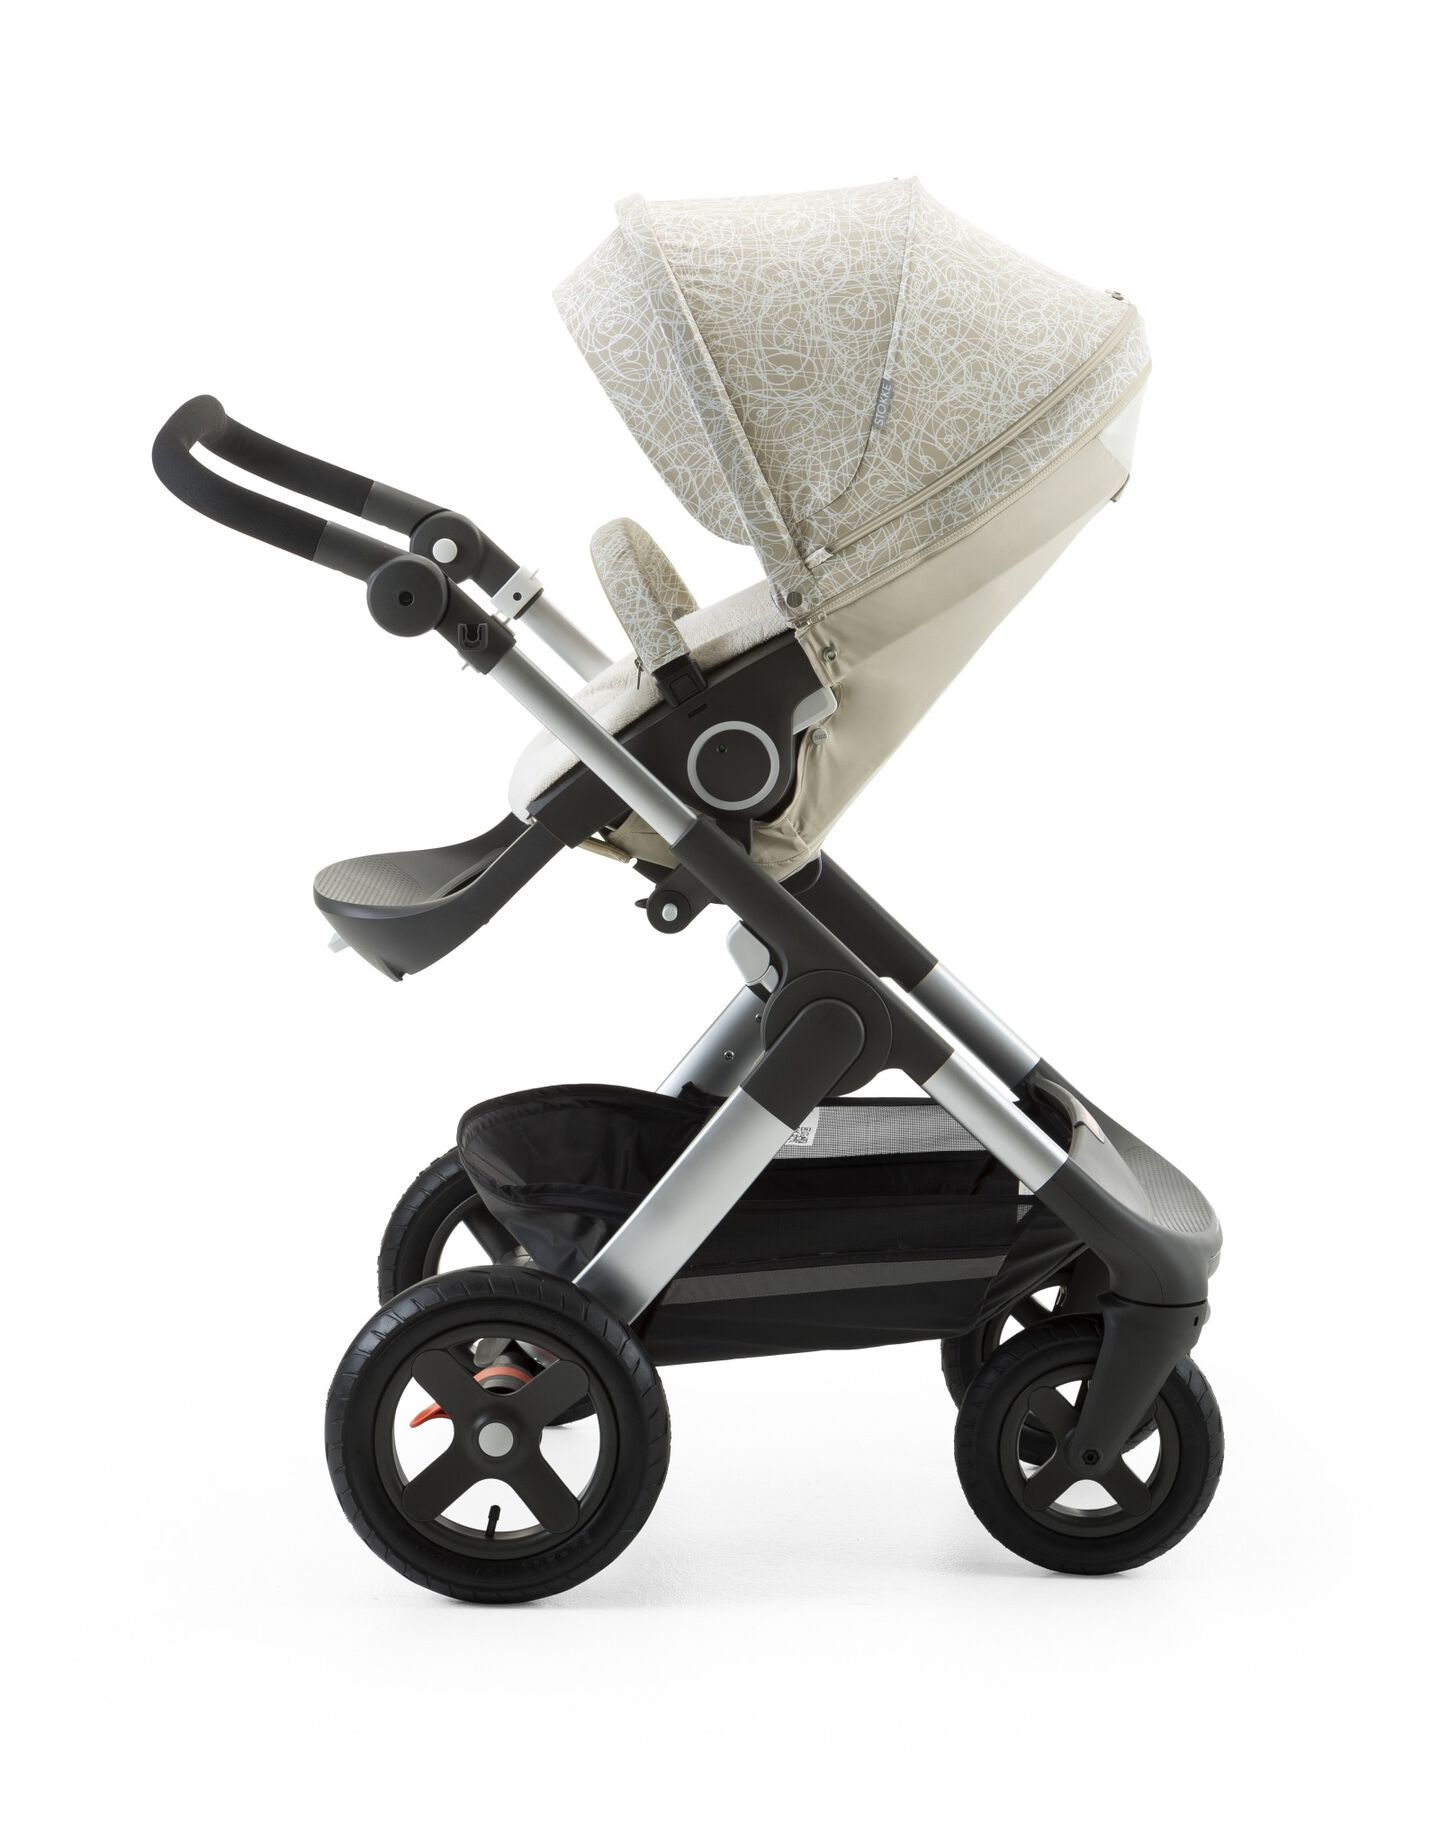 Stokke® Trailz™ with Stokke® Stroller Summer Kit Scribble Sandy Beige.